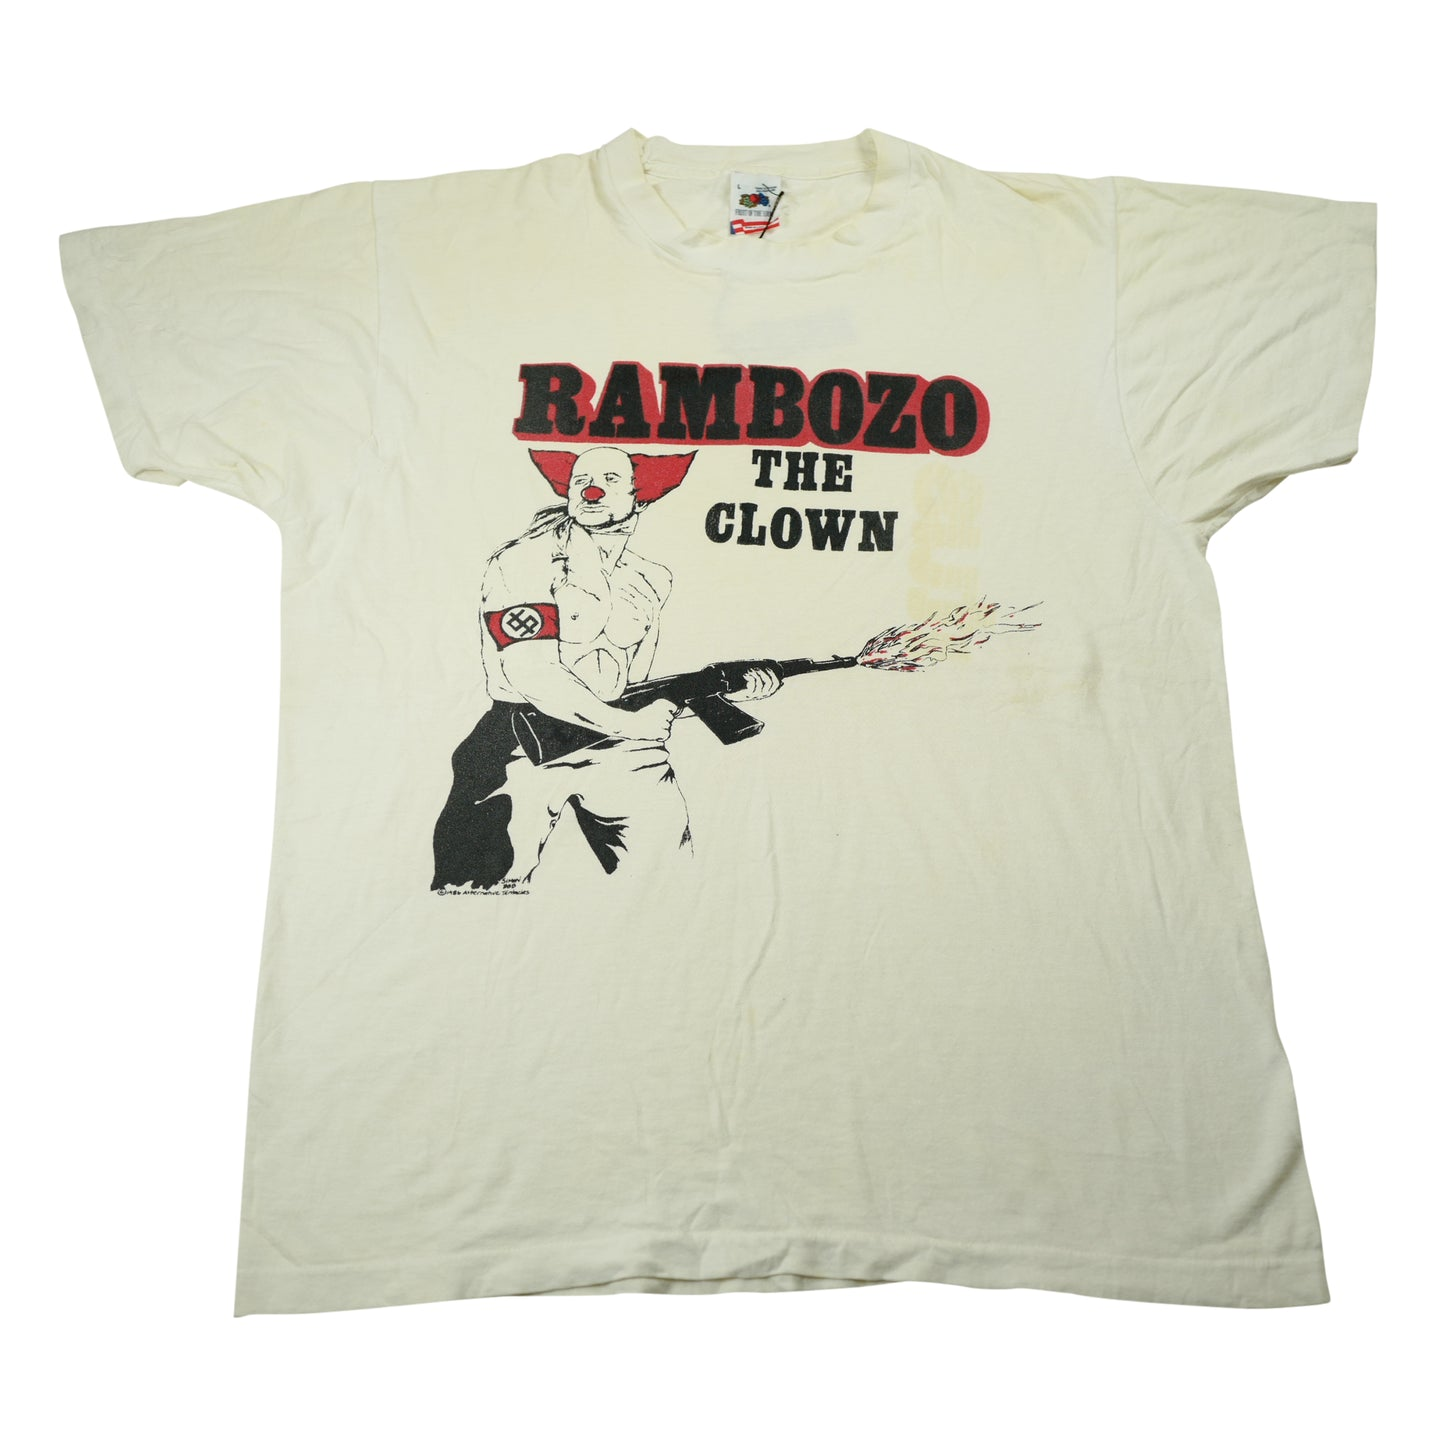 Vintage 1986 Dead Kennedys Rambozo The Clown Tee